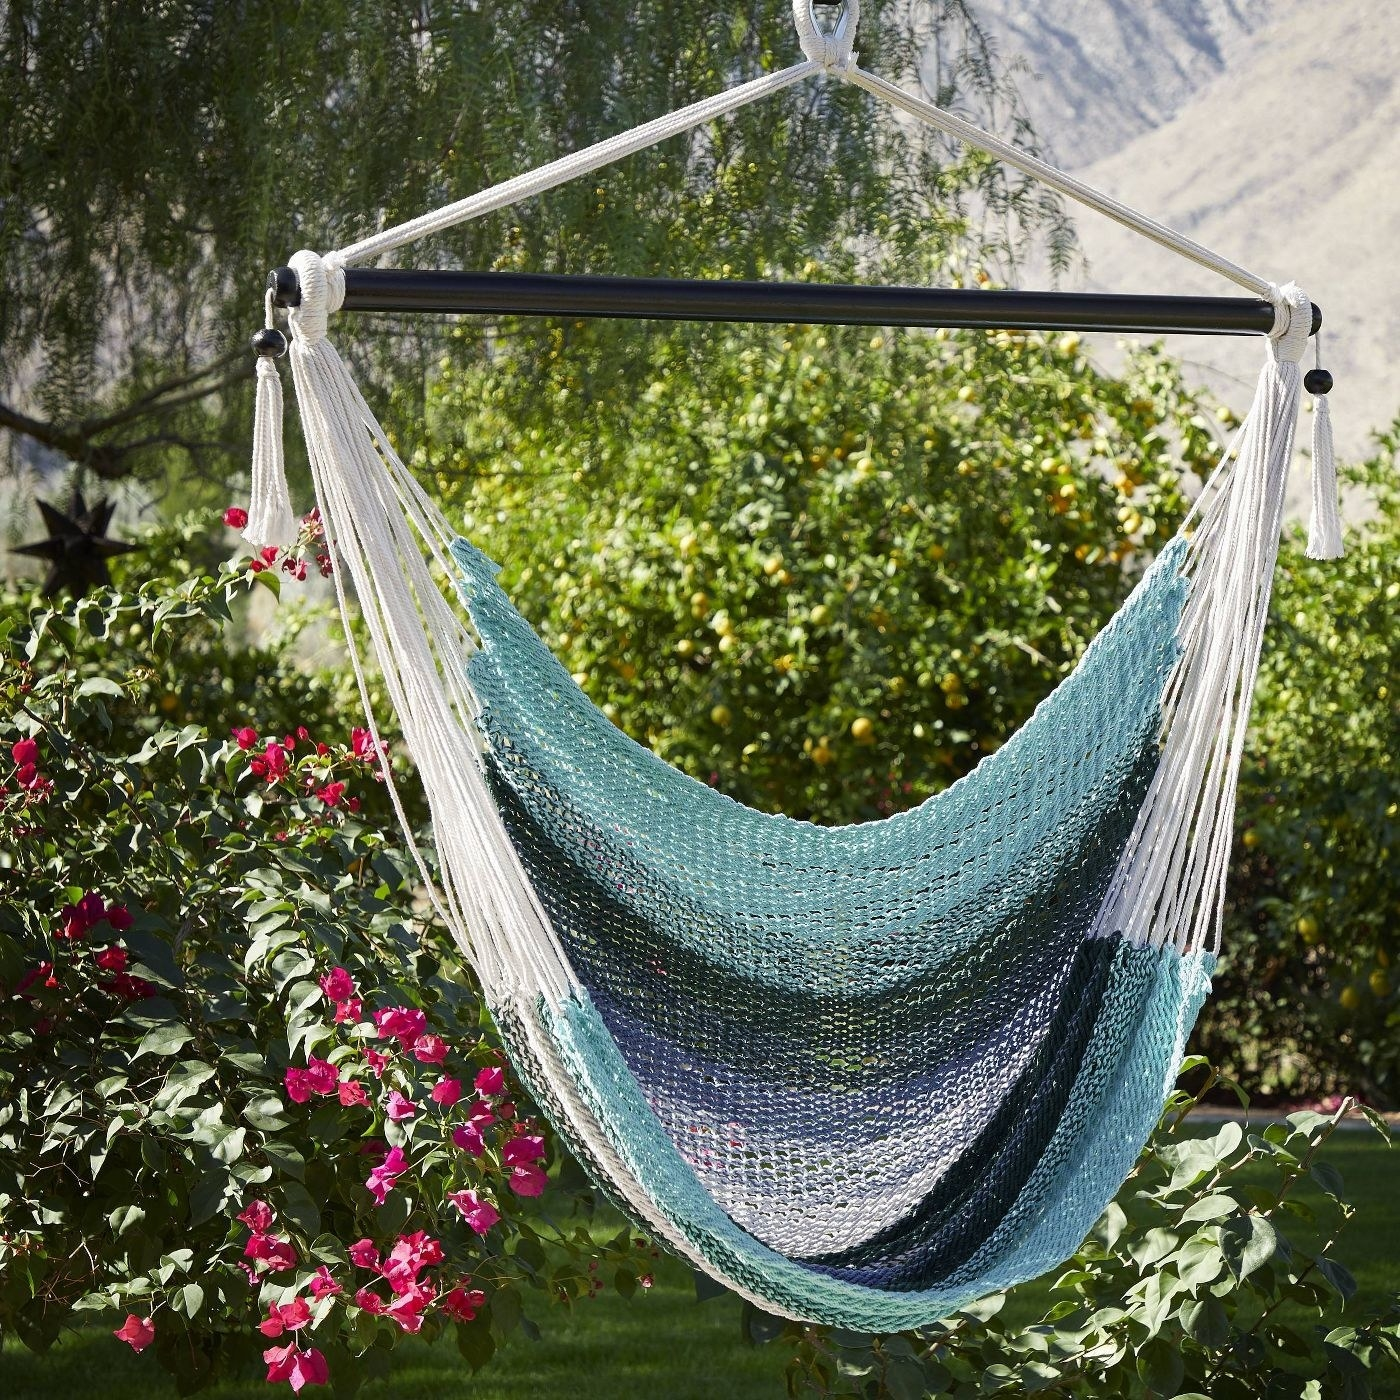 A hanging hammock chair in blue, white, and seafoam green